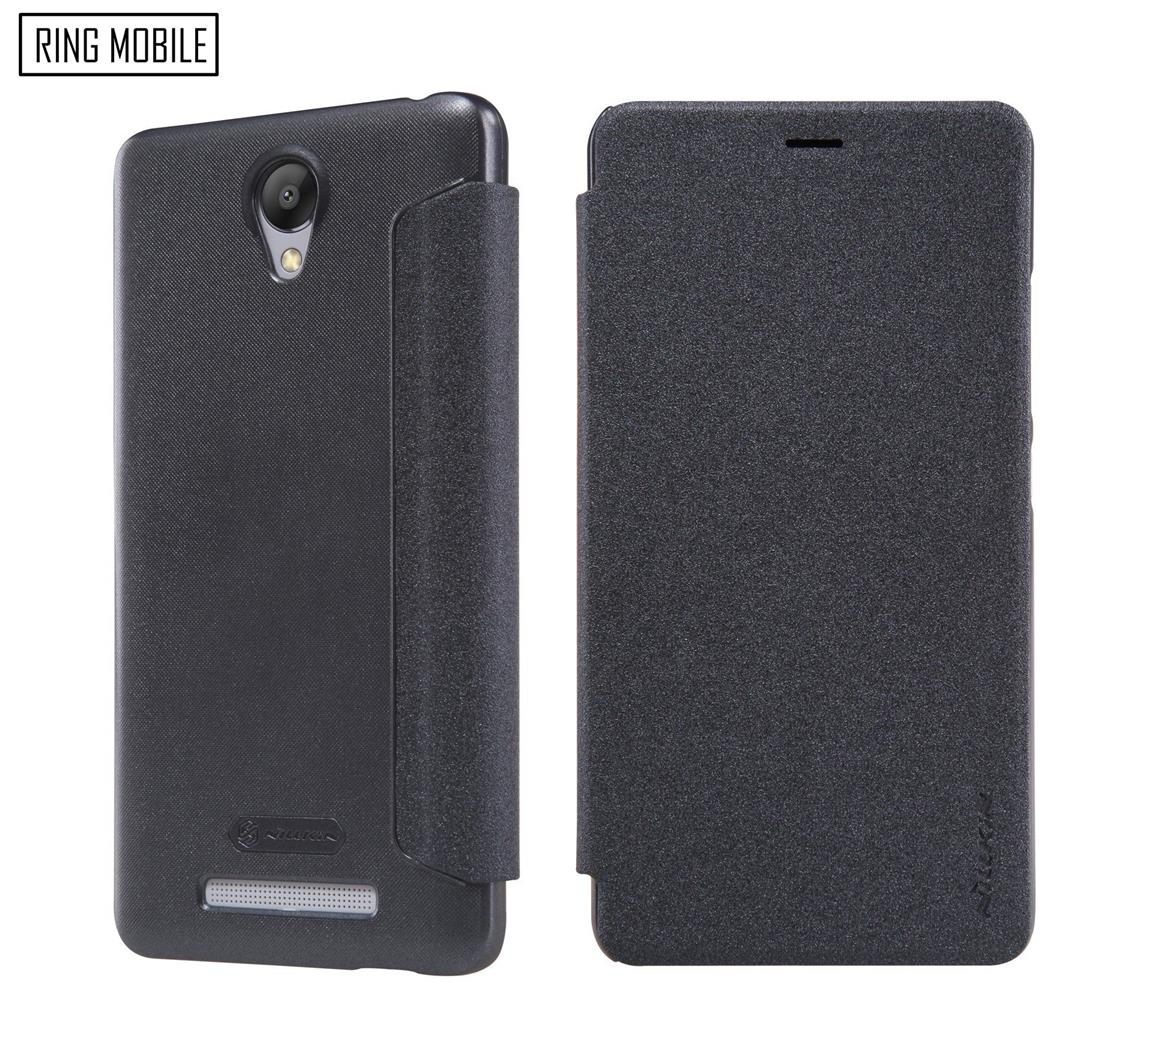 XiaoMi RedMi Note 2 Nillkin Sparkle series Leather Case - Black